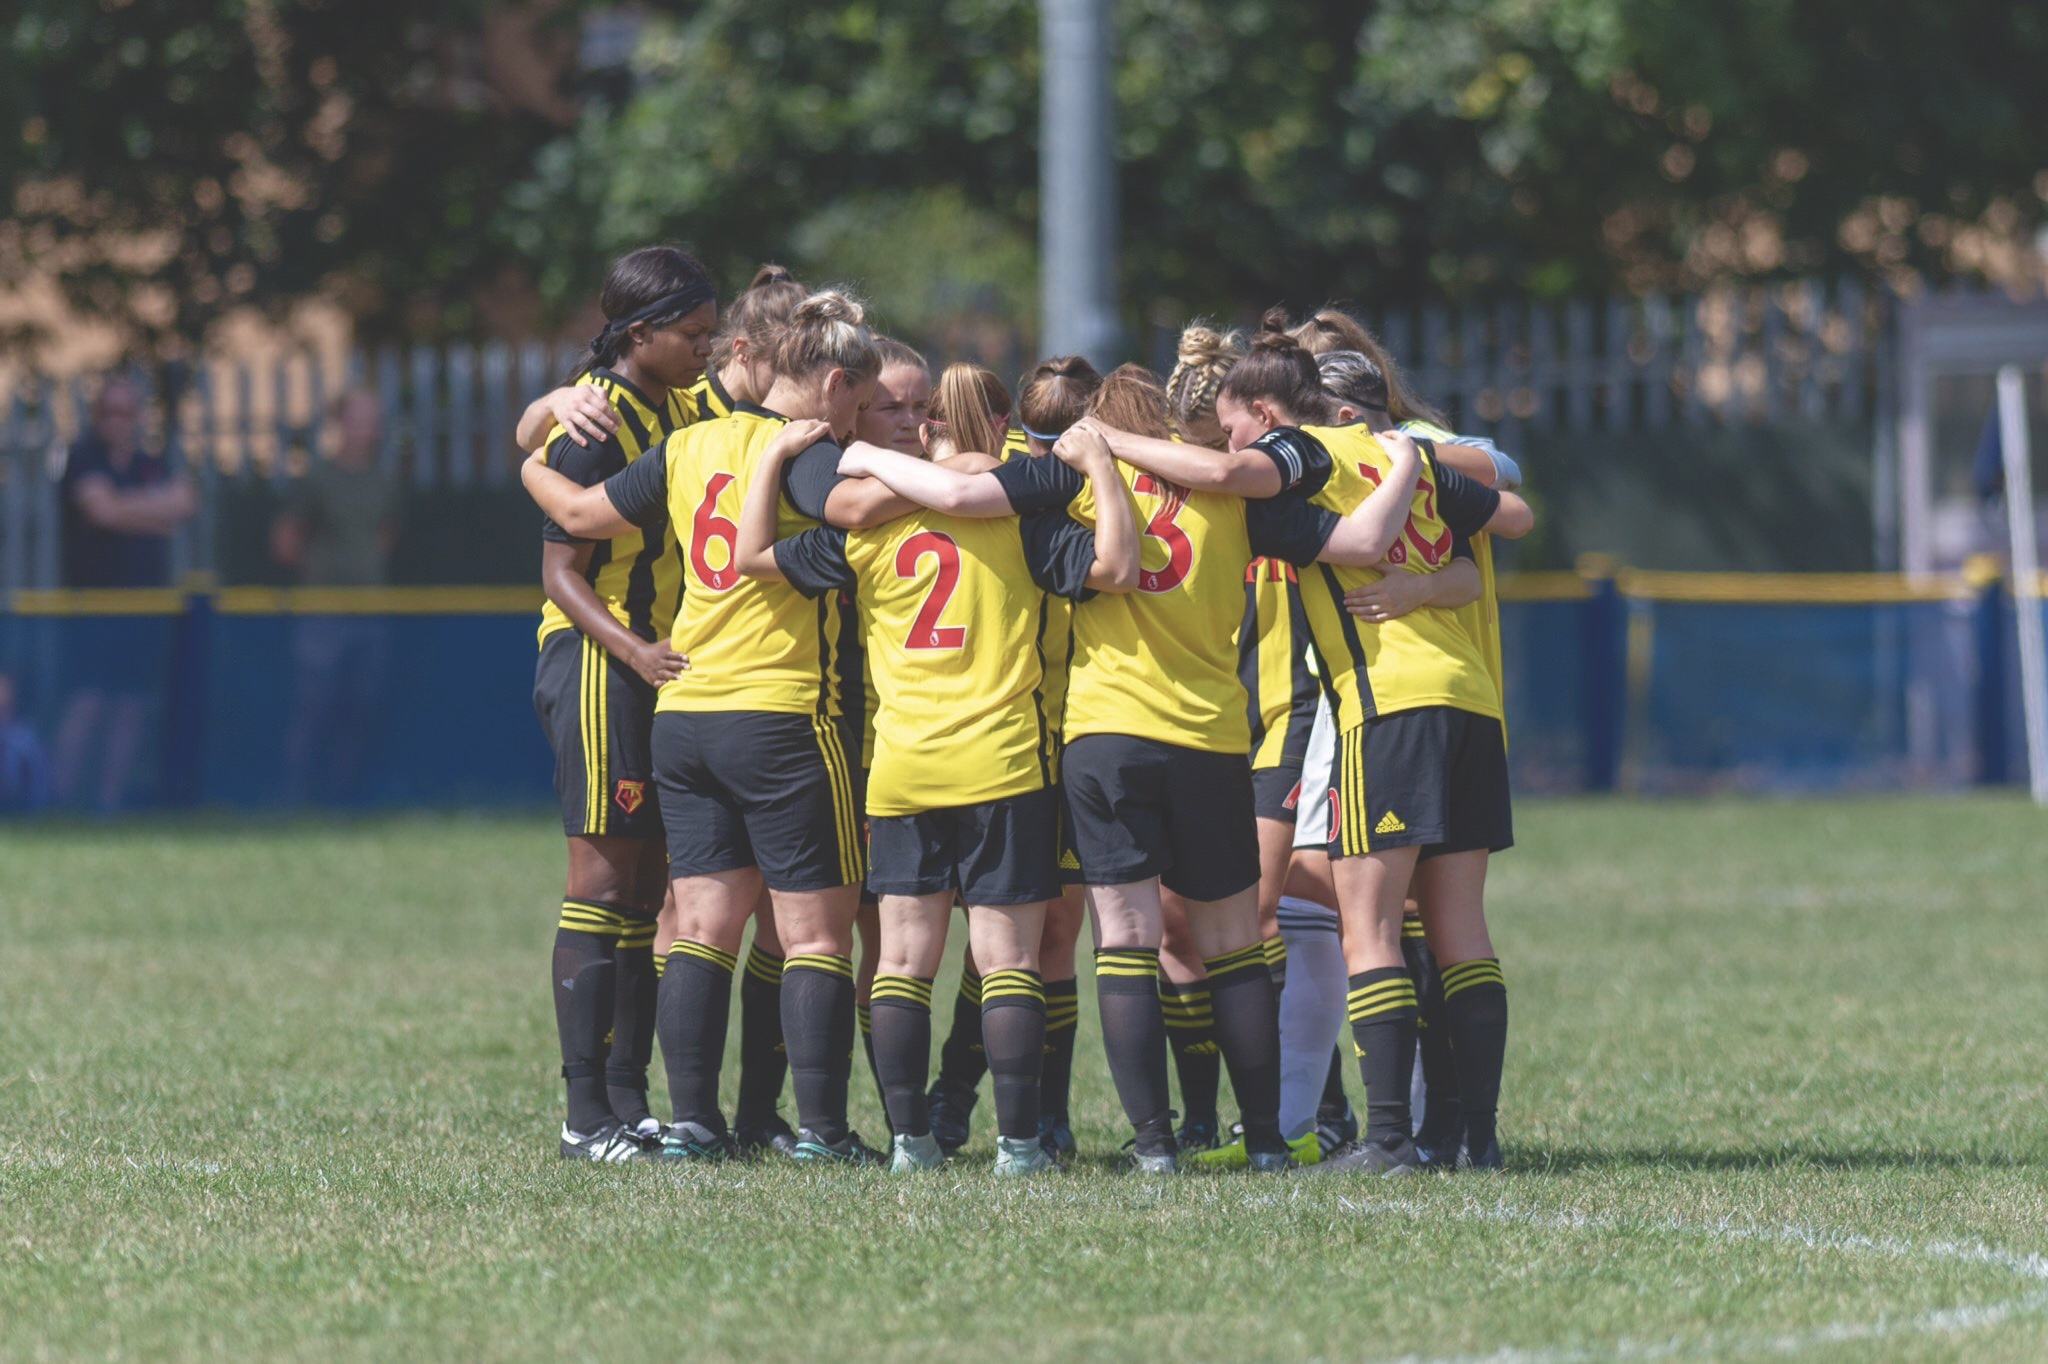 Watford FC Ladies in a group huddle. Taken by Andrew Waller Images.